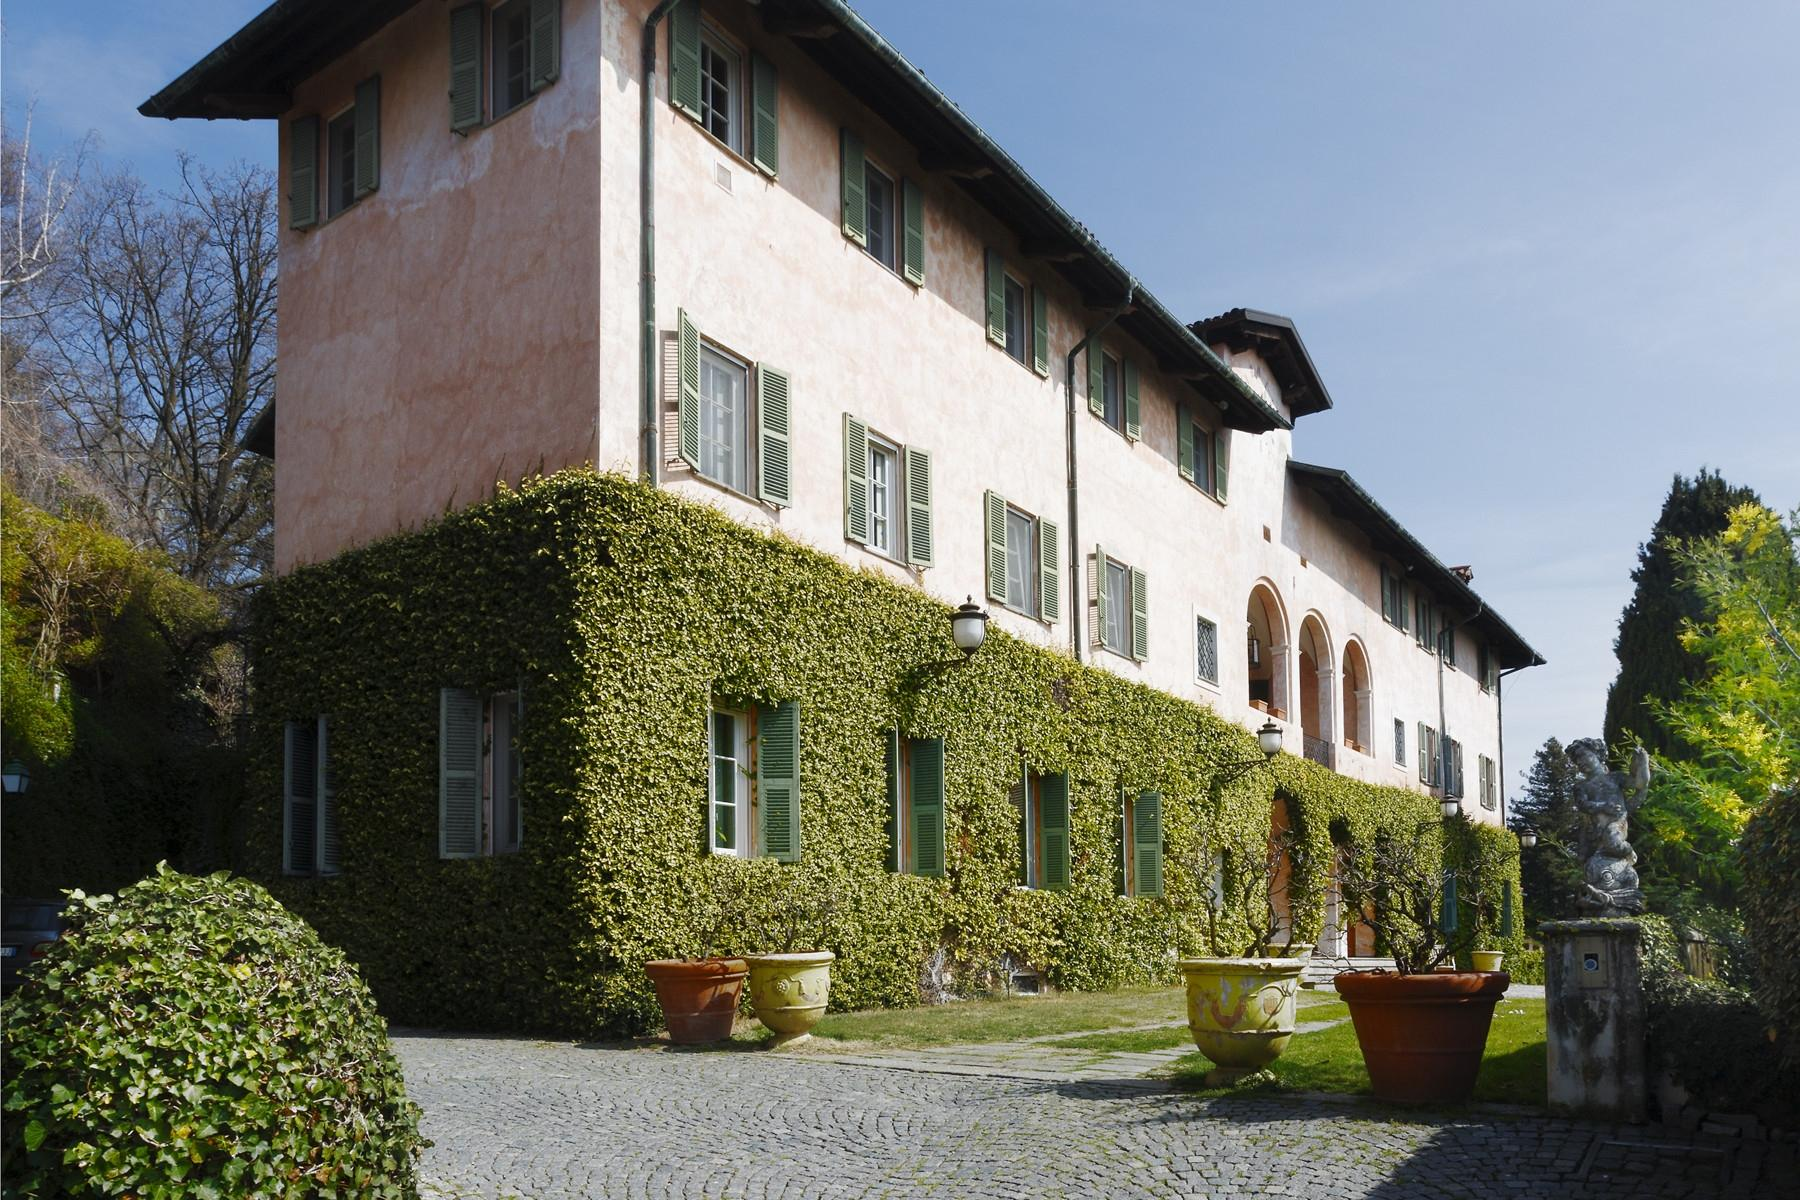 Historical Villa in the countryside of Biella - 1